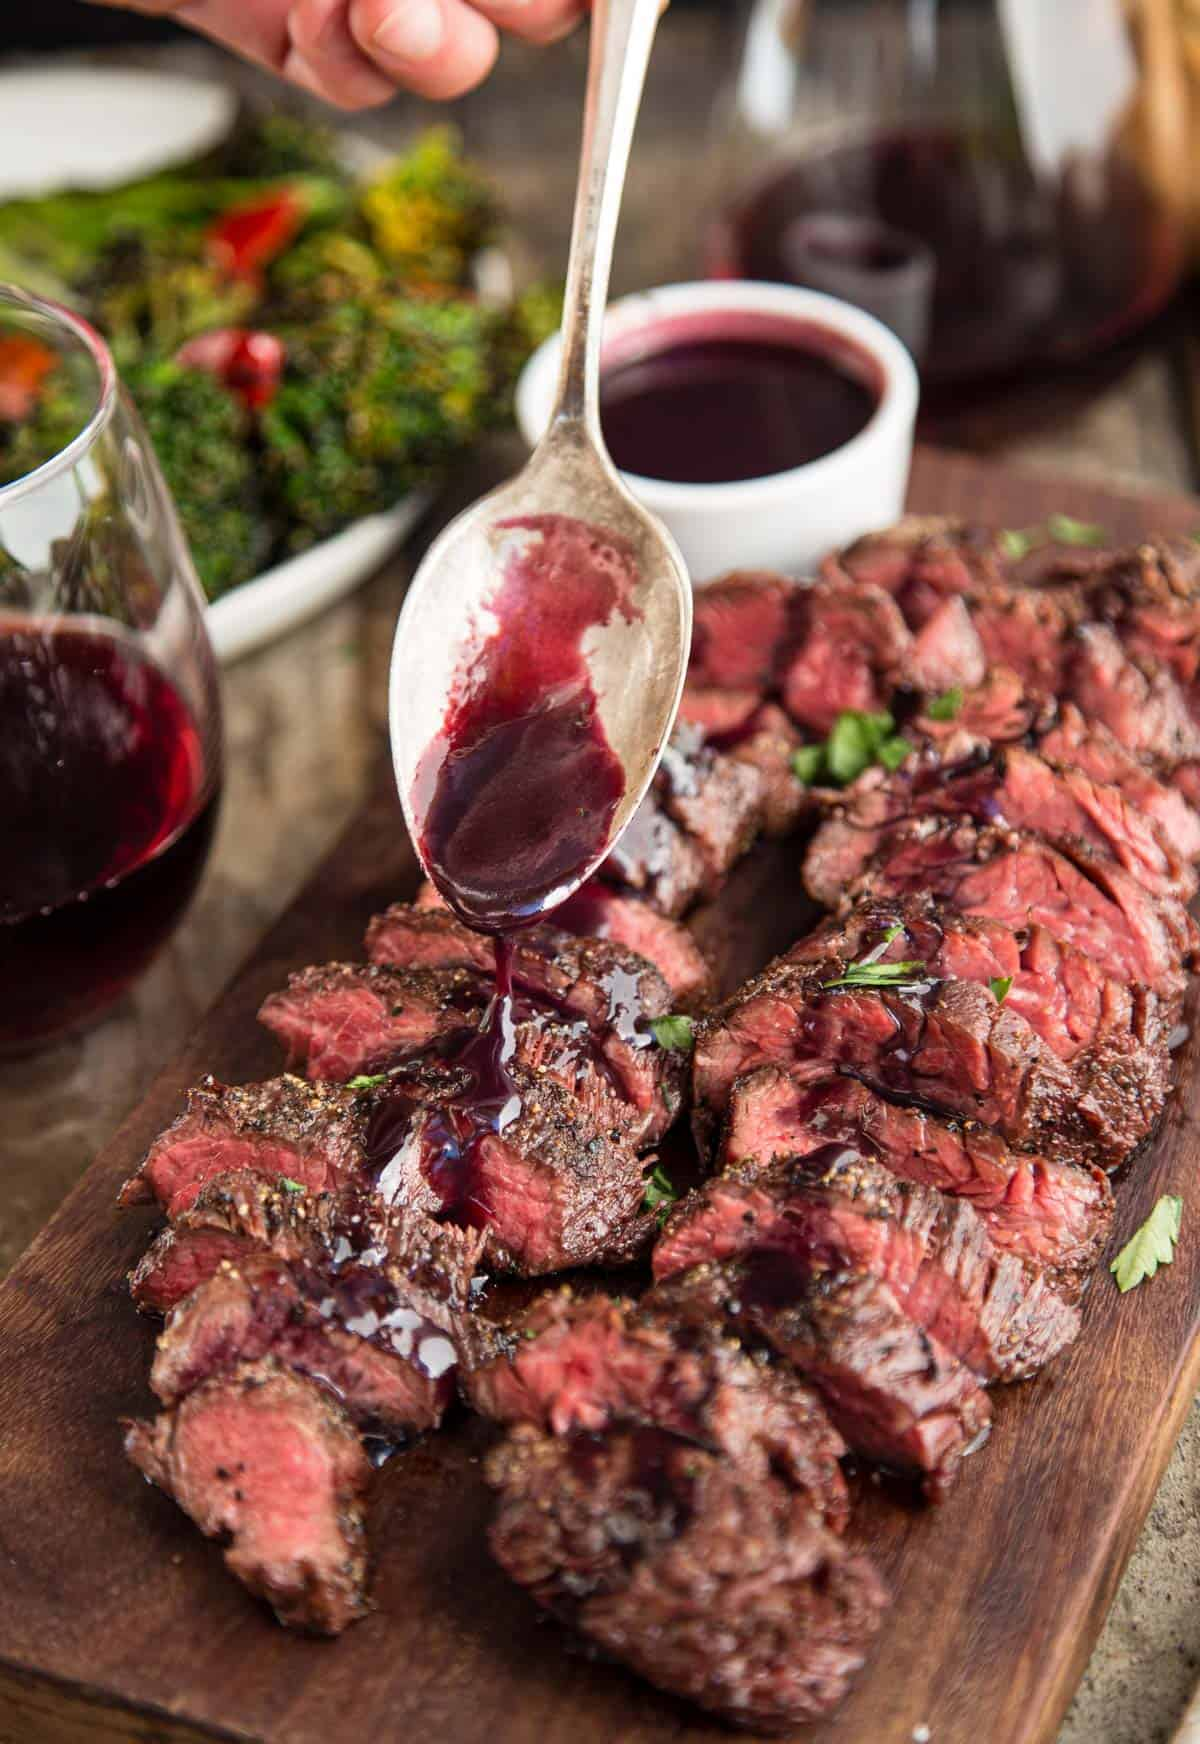 Slices of Grilled Hanger Steak with a wine reduction sauce being poured over the top